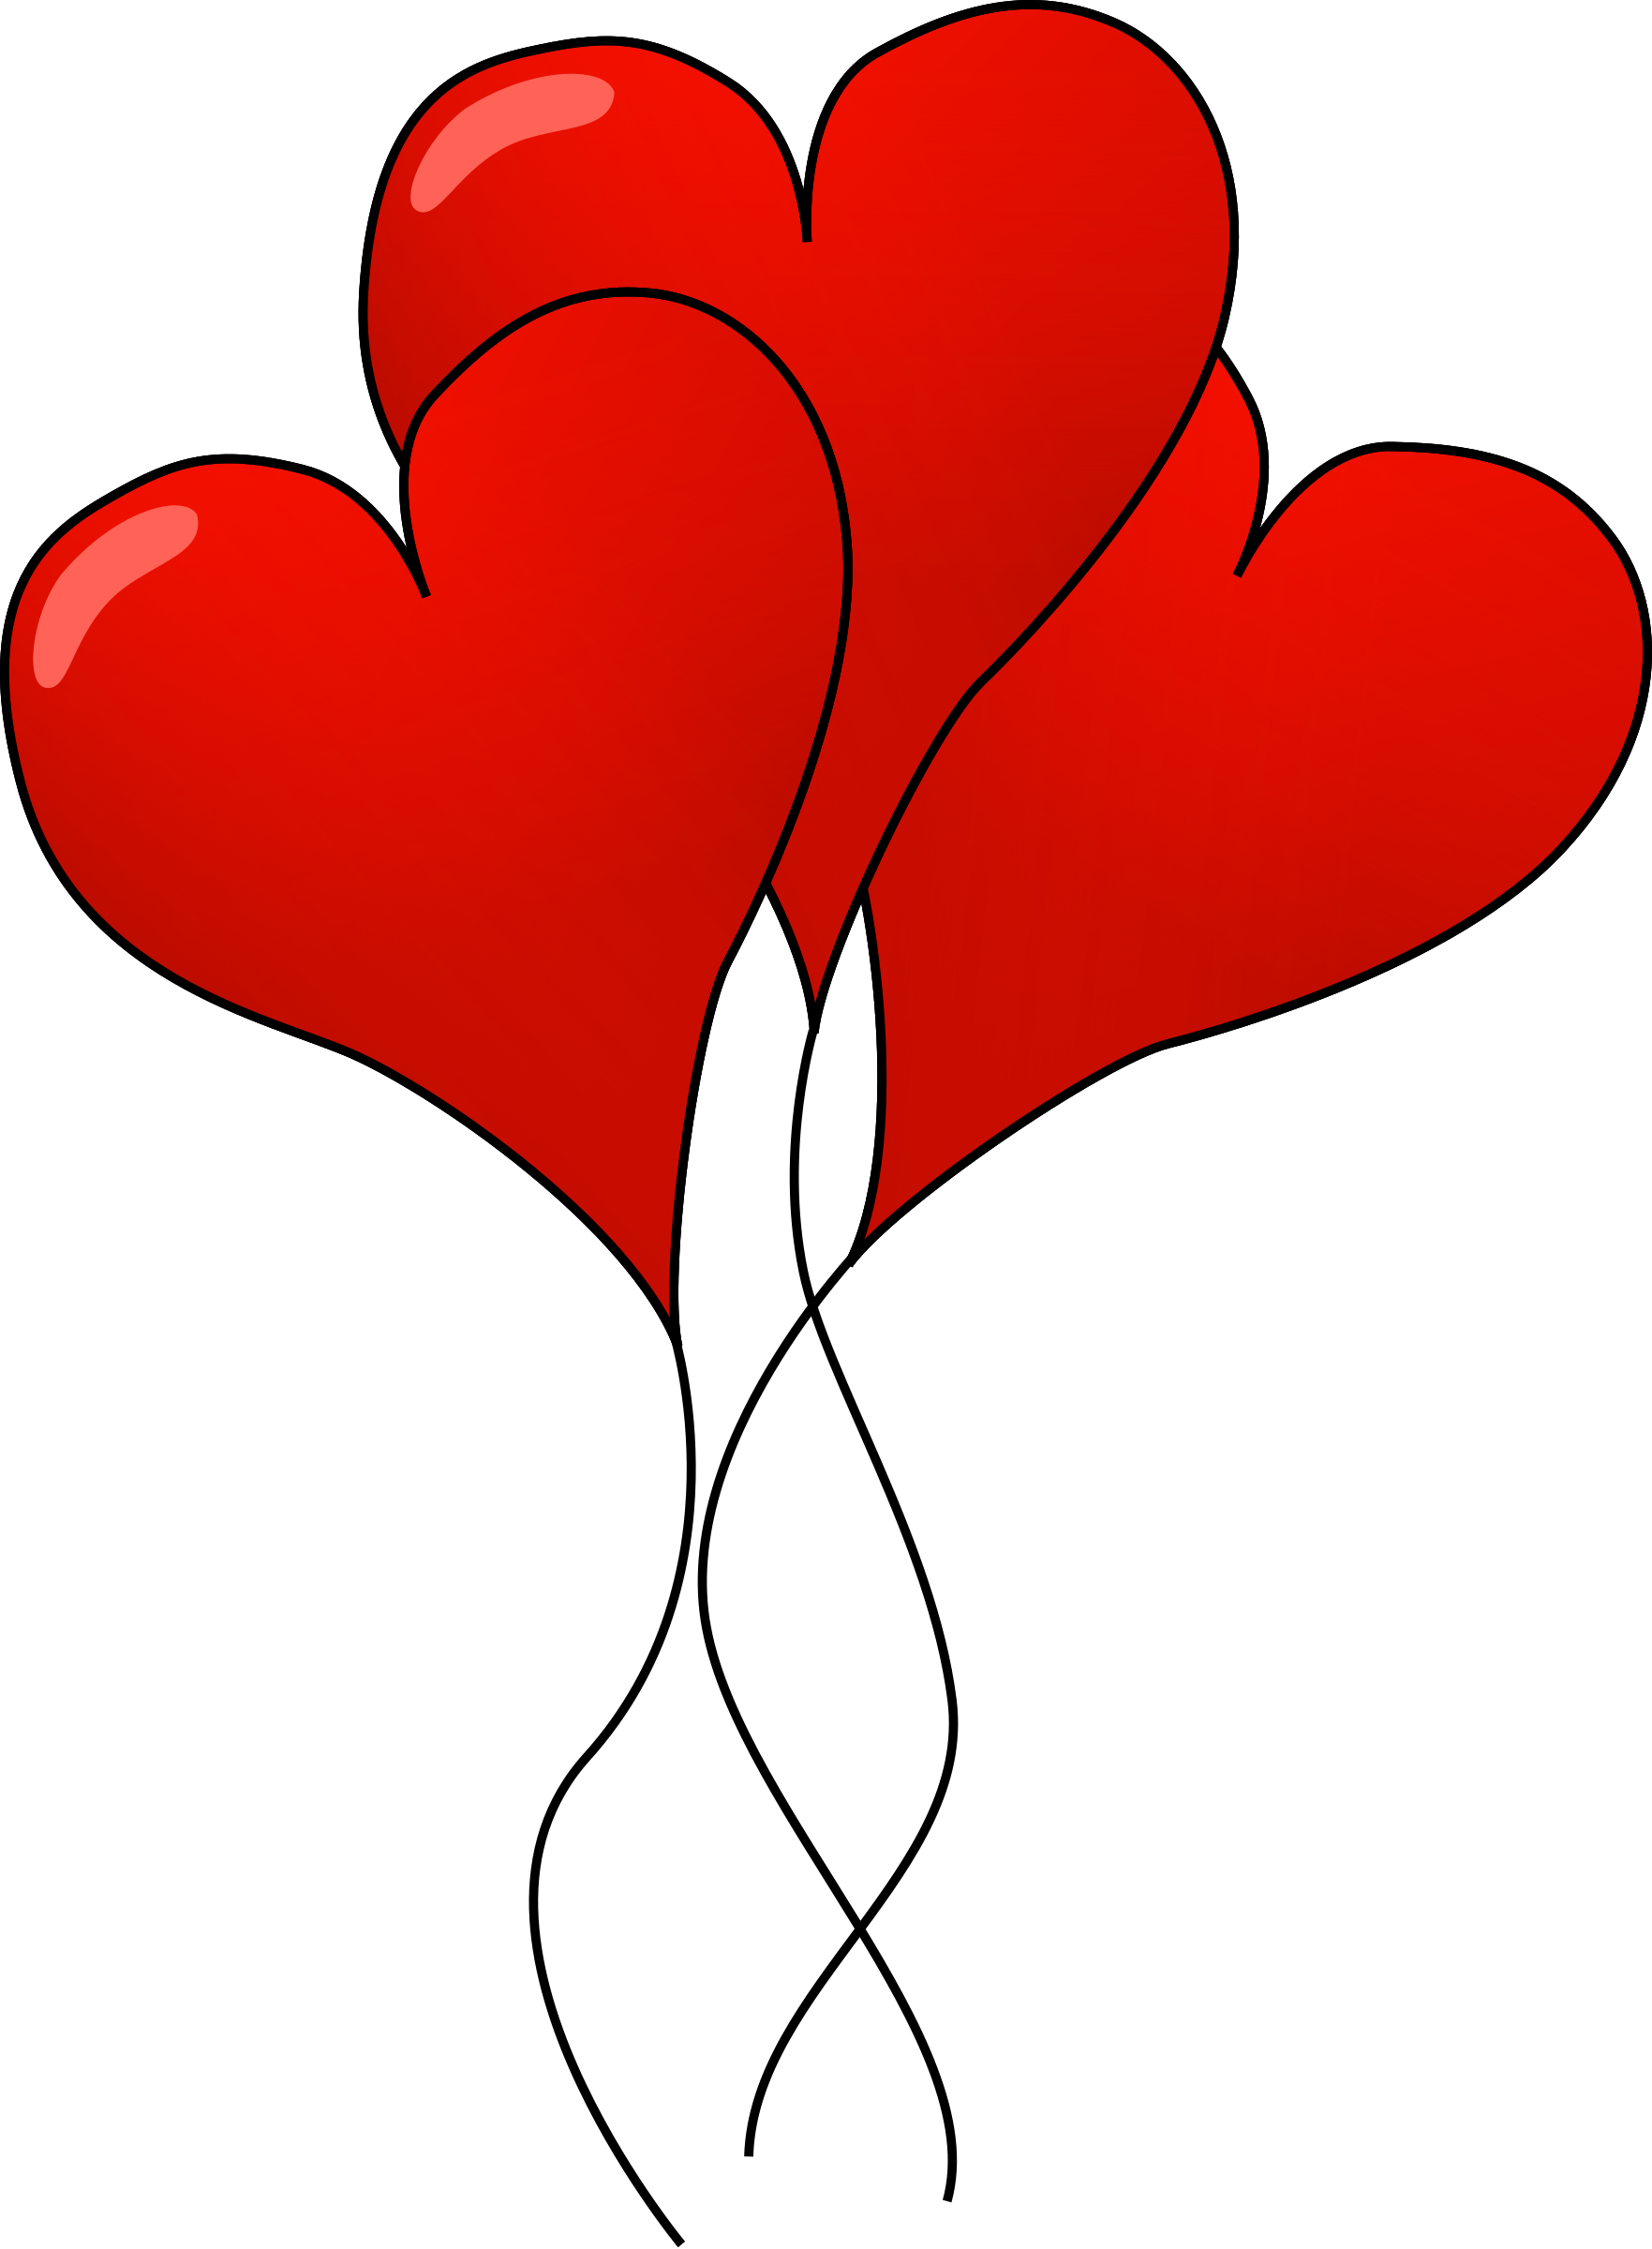 Heart balloons big image. Clipart hearts plant